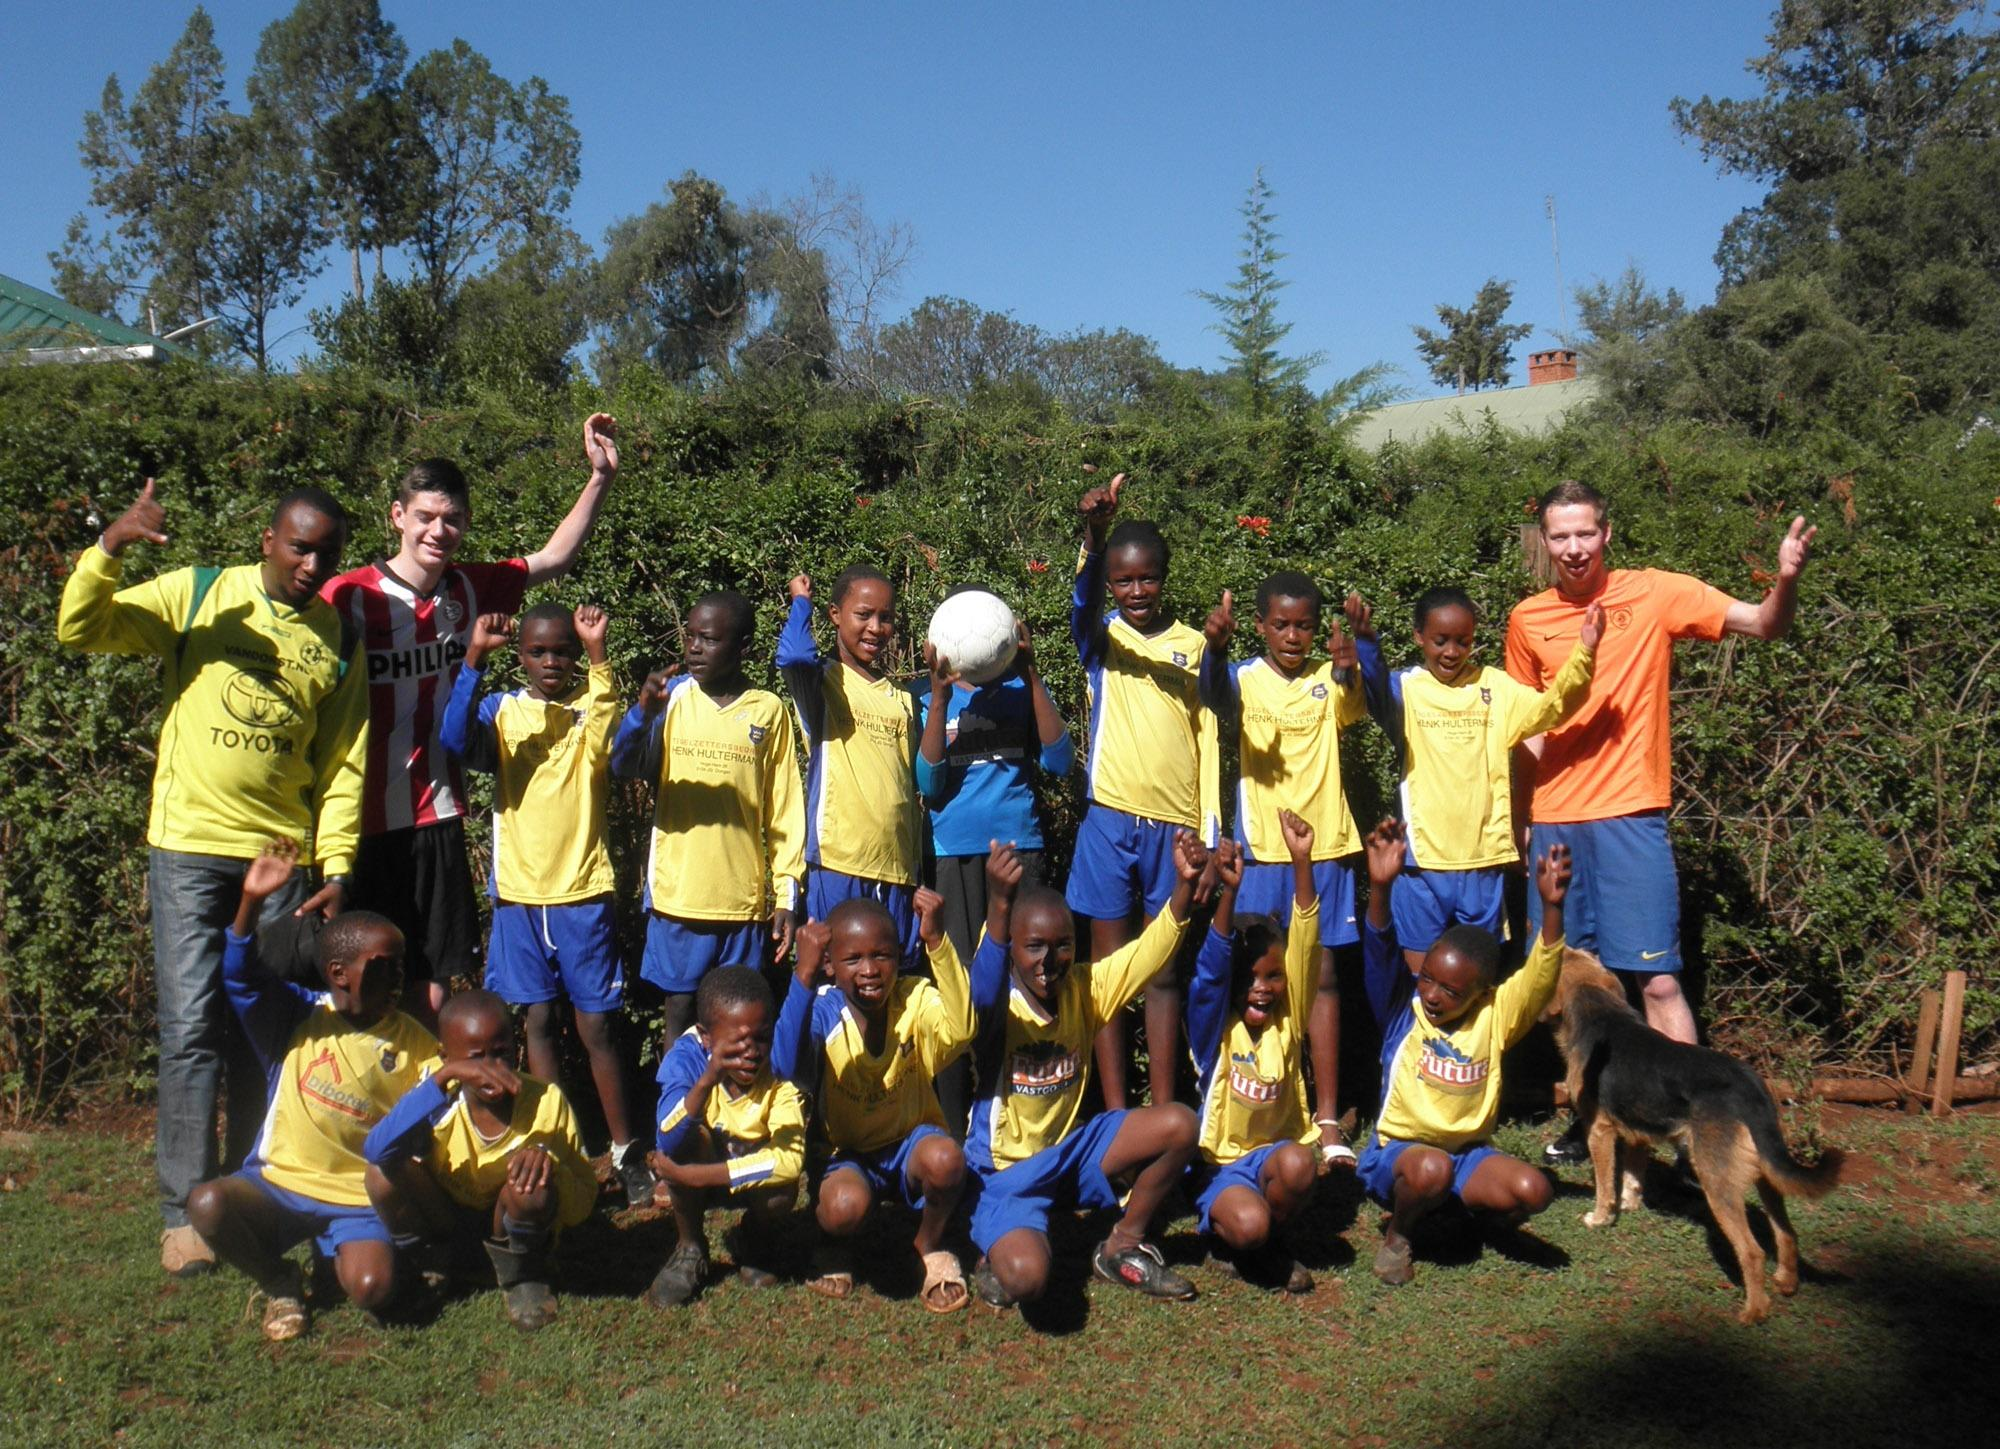 Young members of the school soccer team pose for a picture with volunteers.